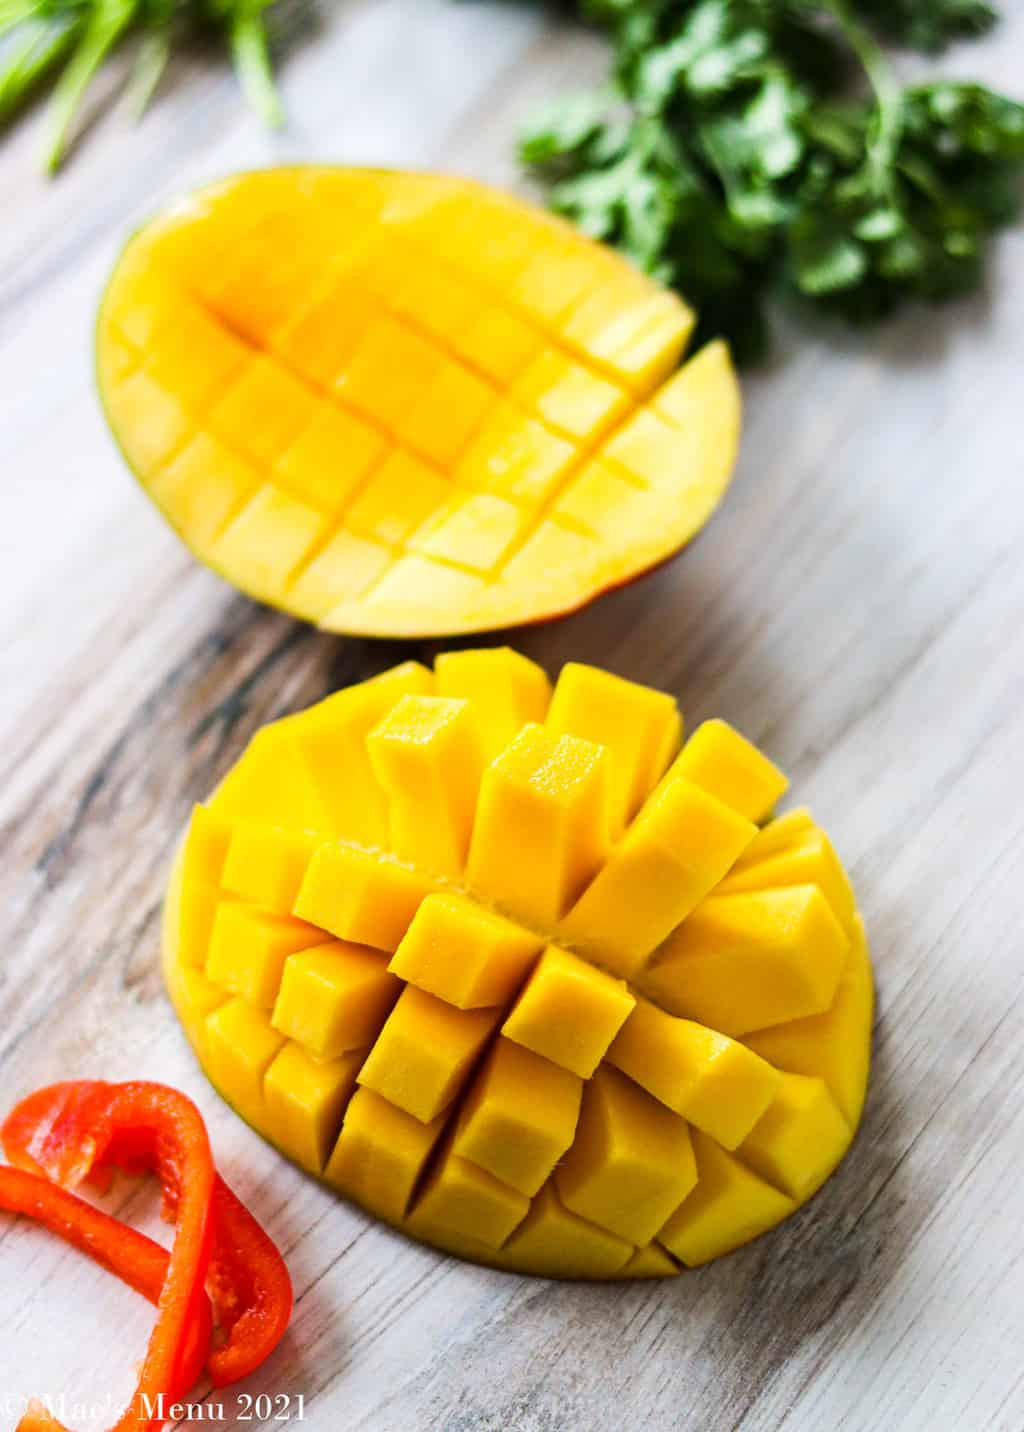 Halves of a mango with the crisscross pattern cut into them. One is popped inside out